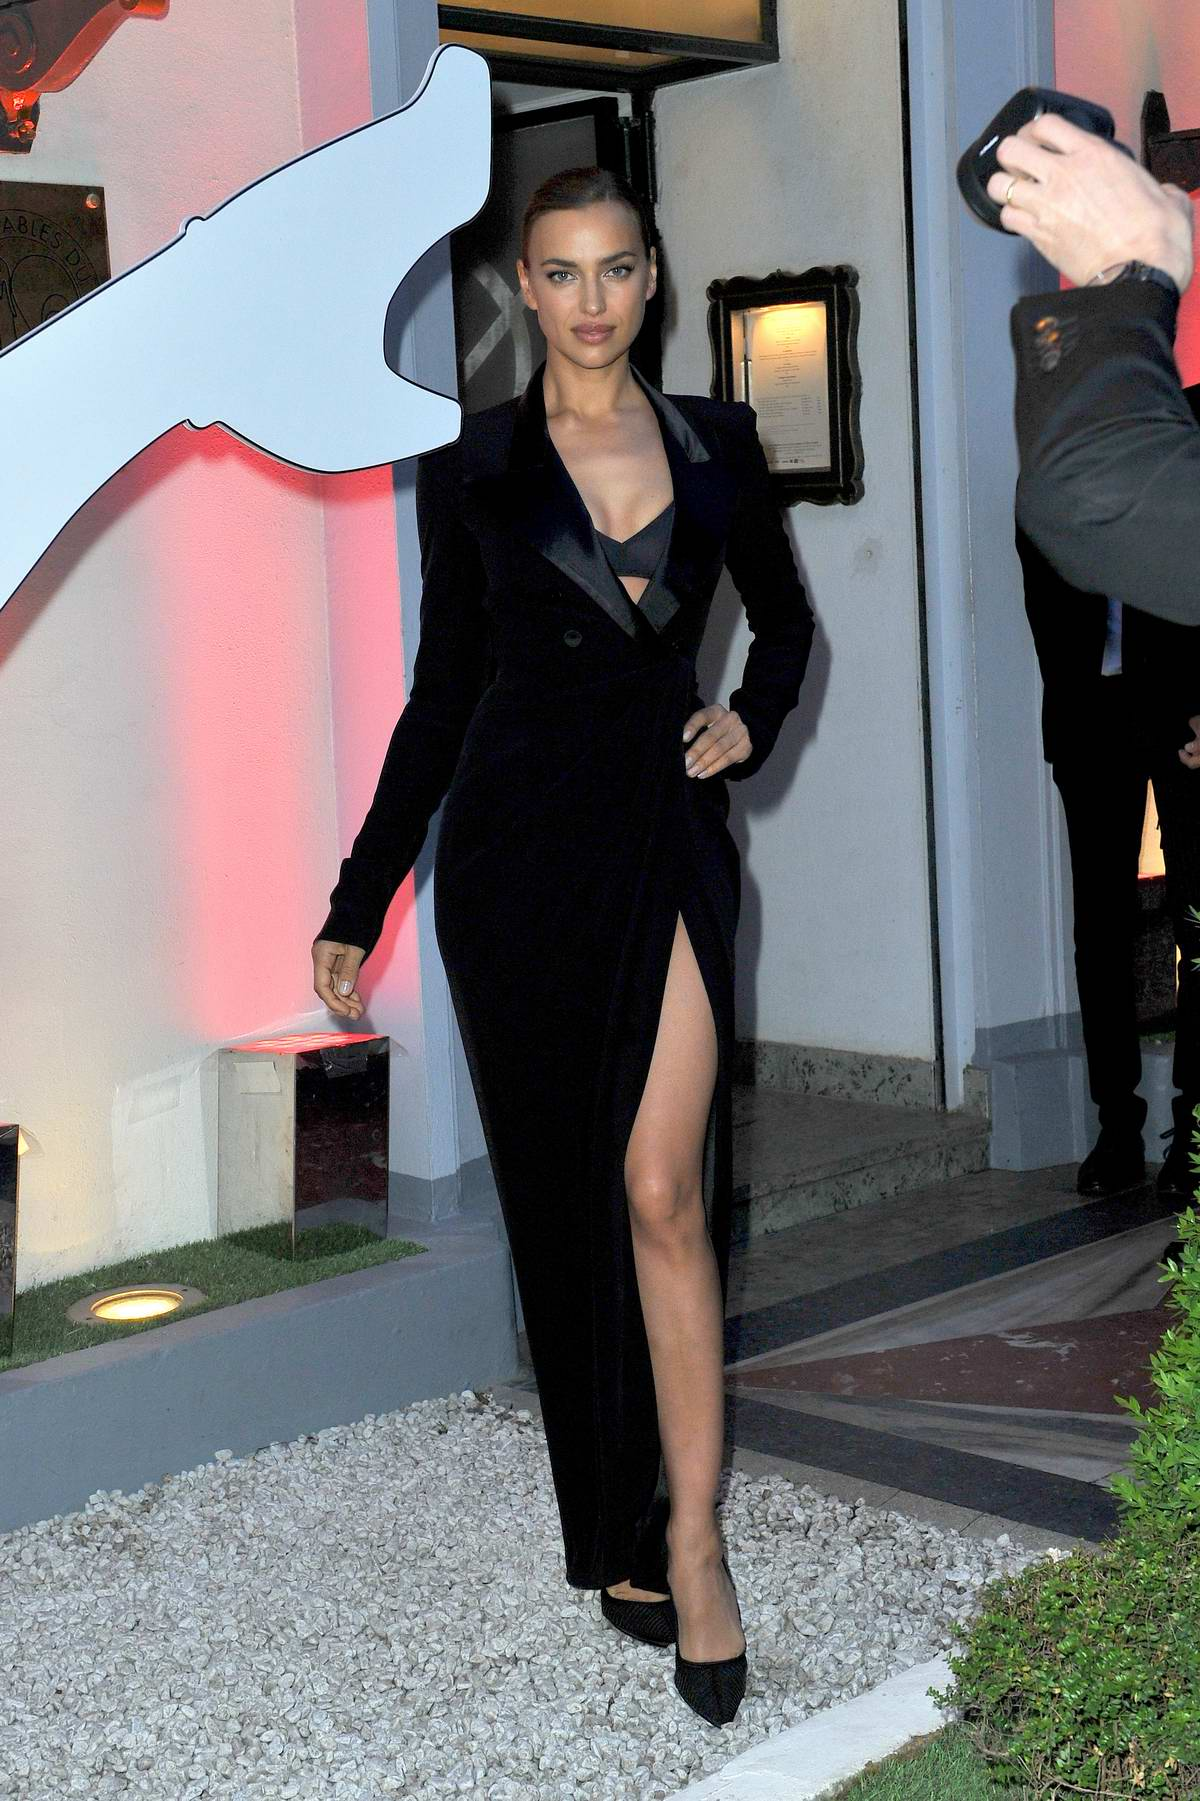 Irina Shayk attends 'Scandal by Jean-Paul Gaultier' party at Lasserre restaurant in Paris, France